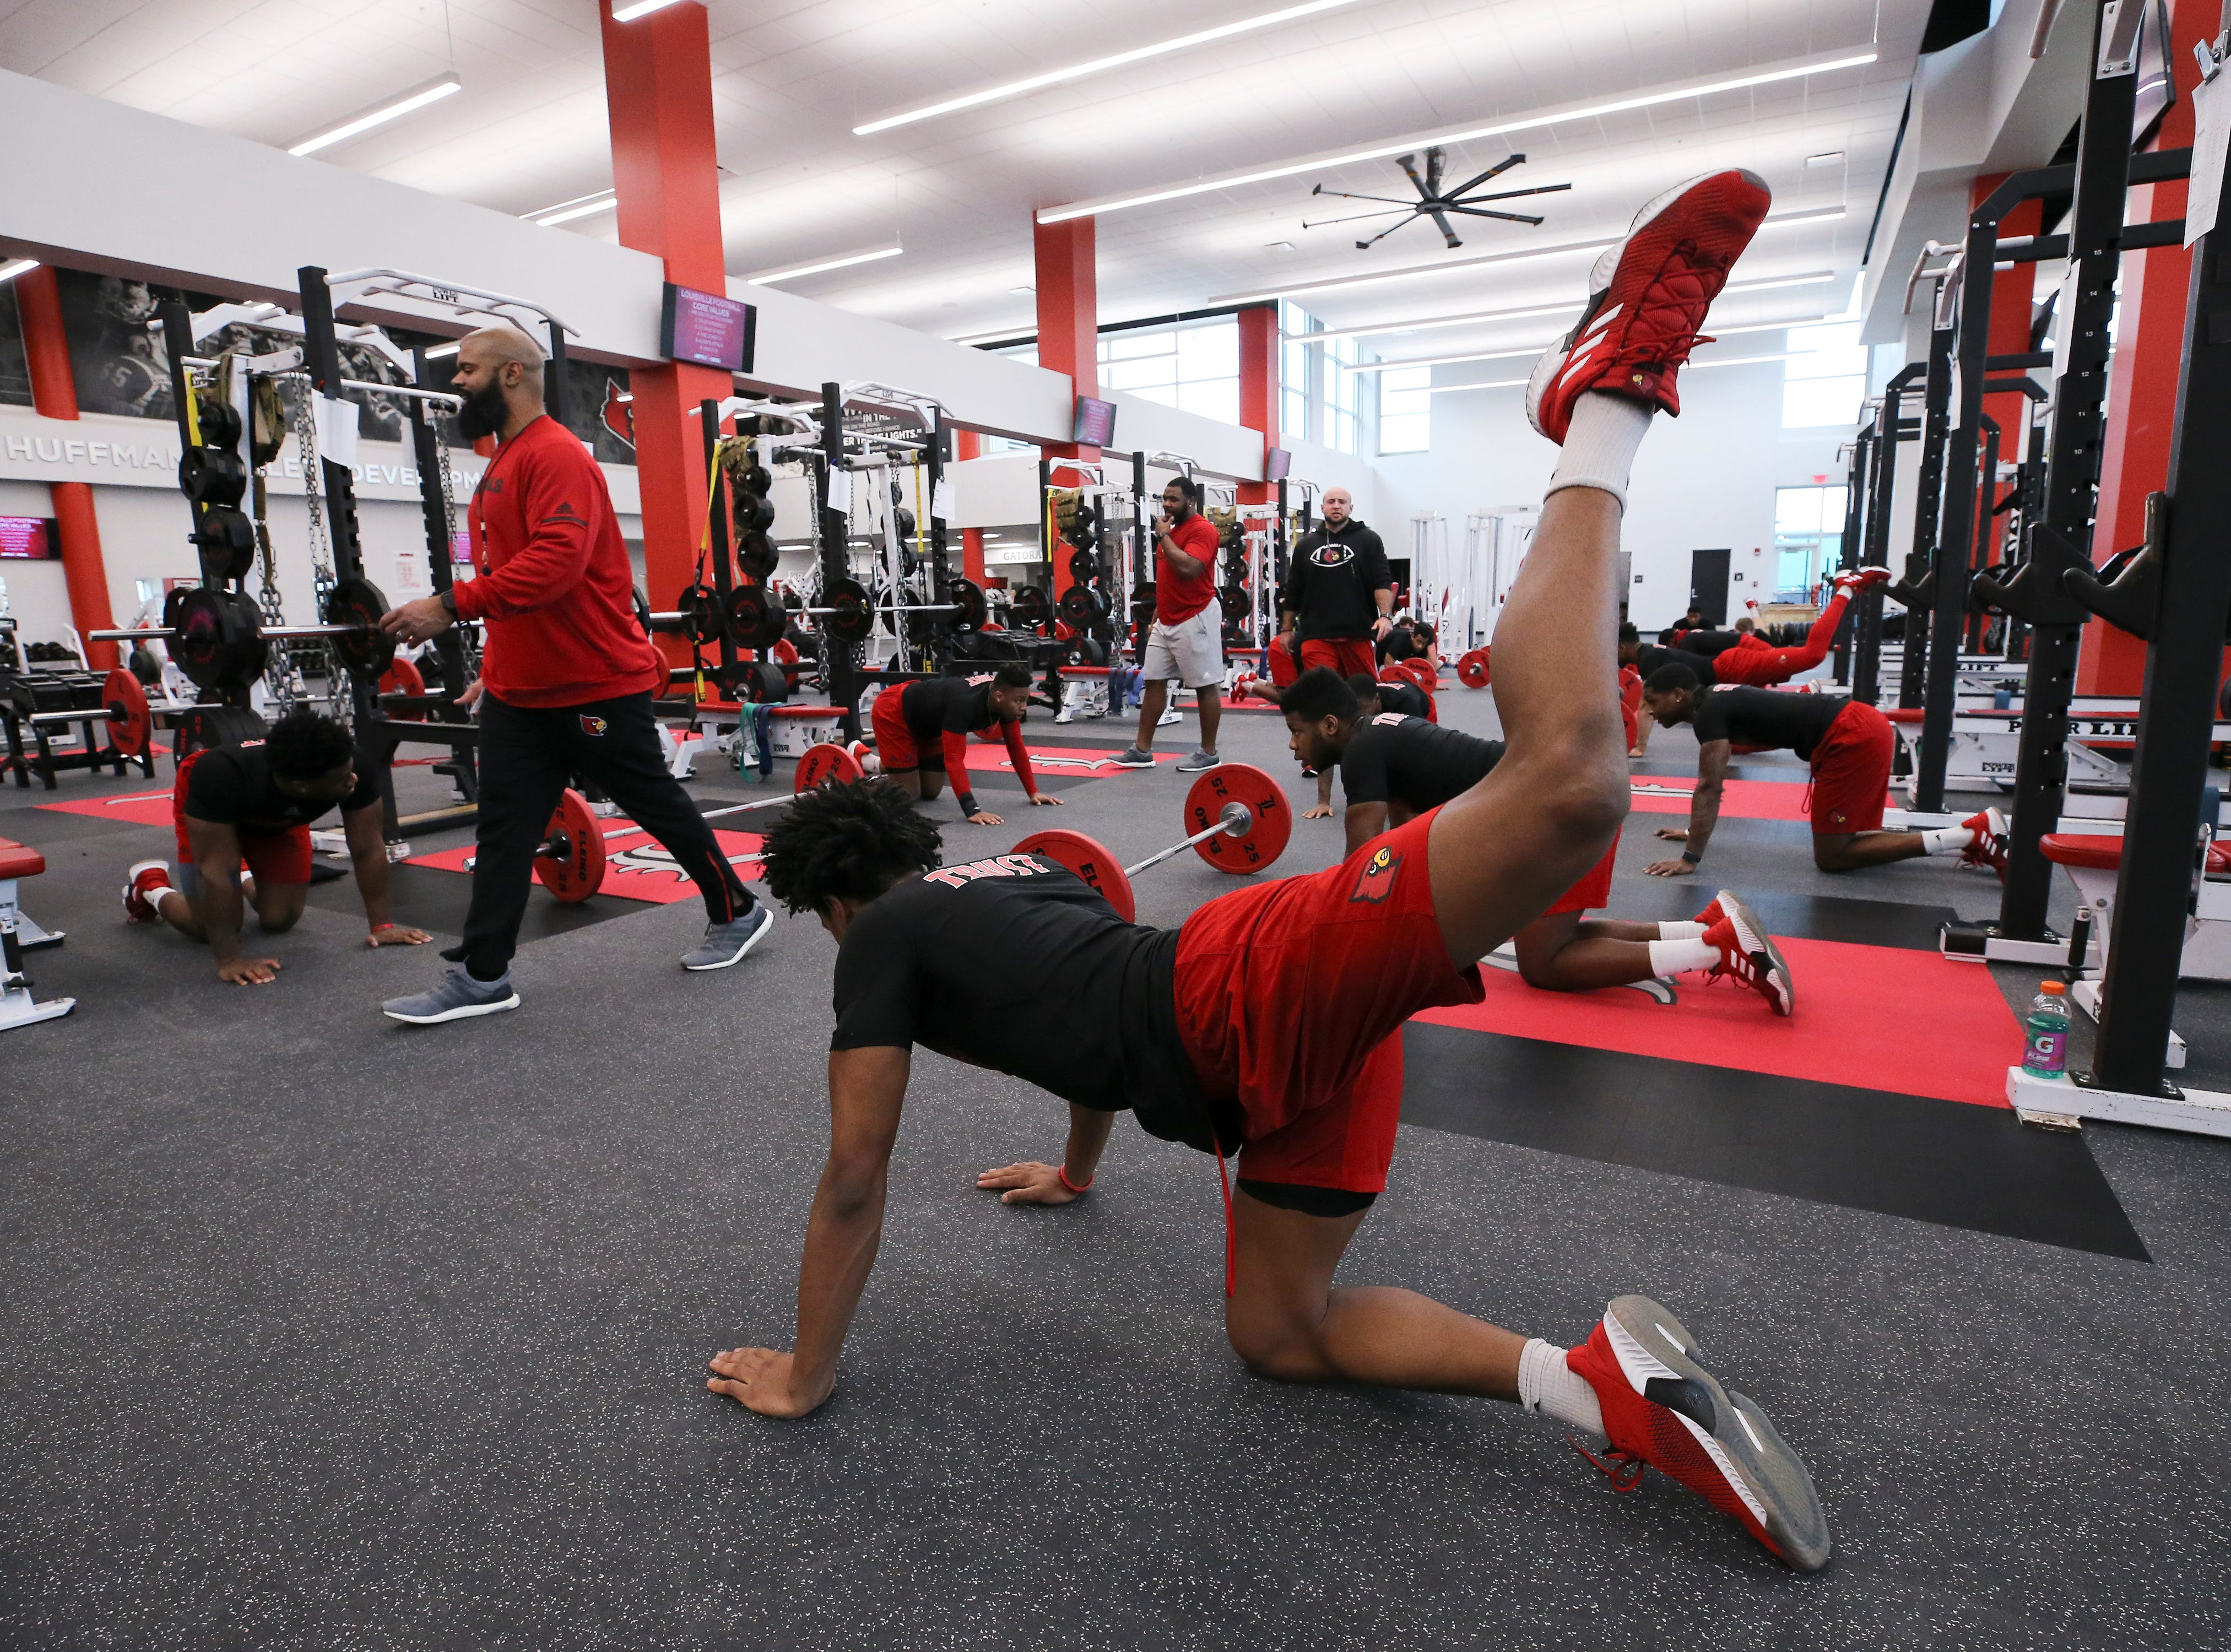 The U of L football team stretches before strength and conditioning at the Schnellenberger Complex.